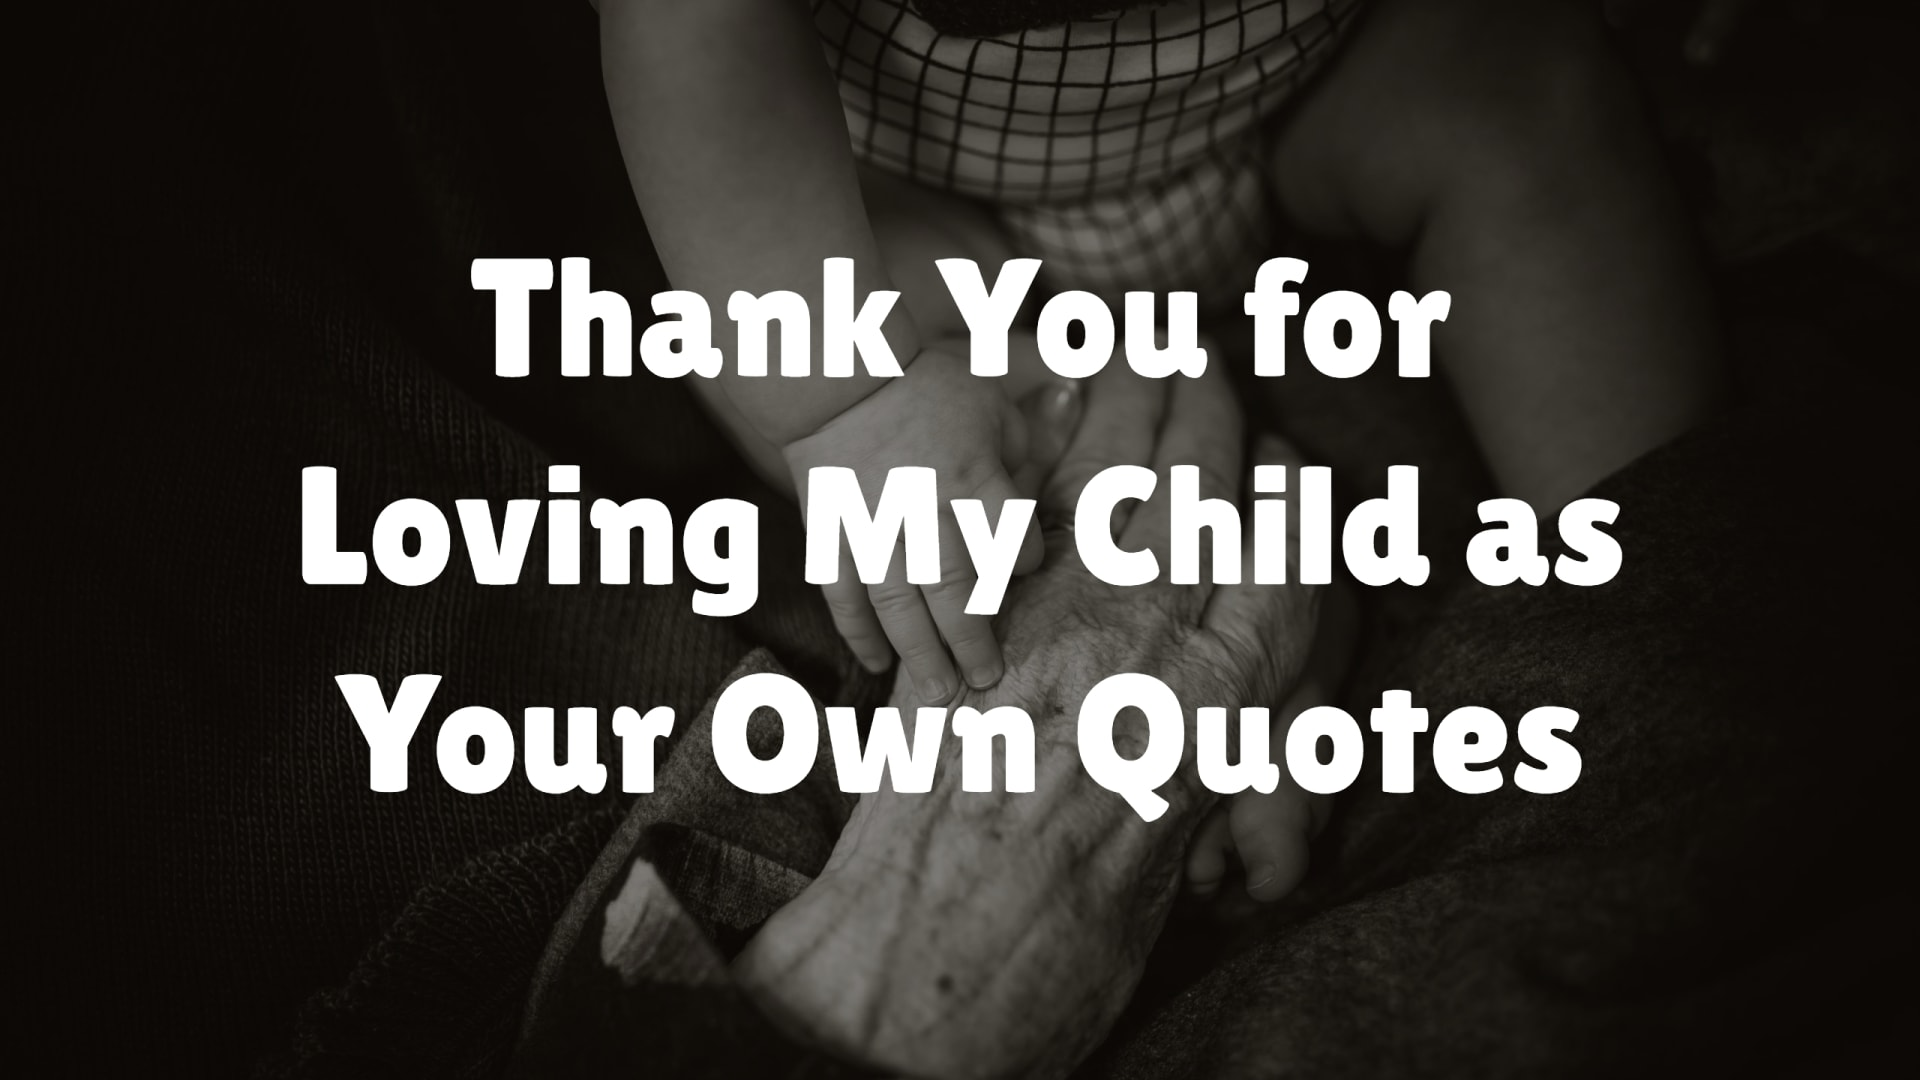 Thank You for Loving My Child as Your Own Quotes